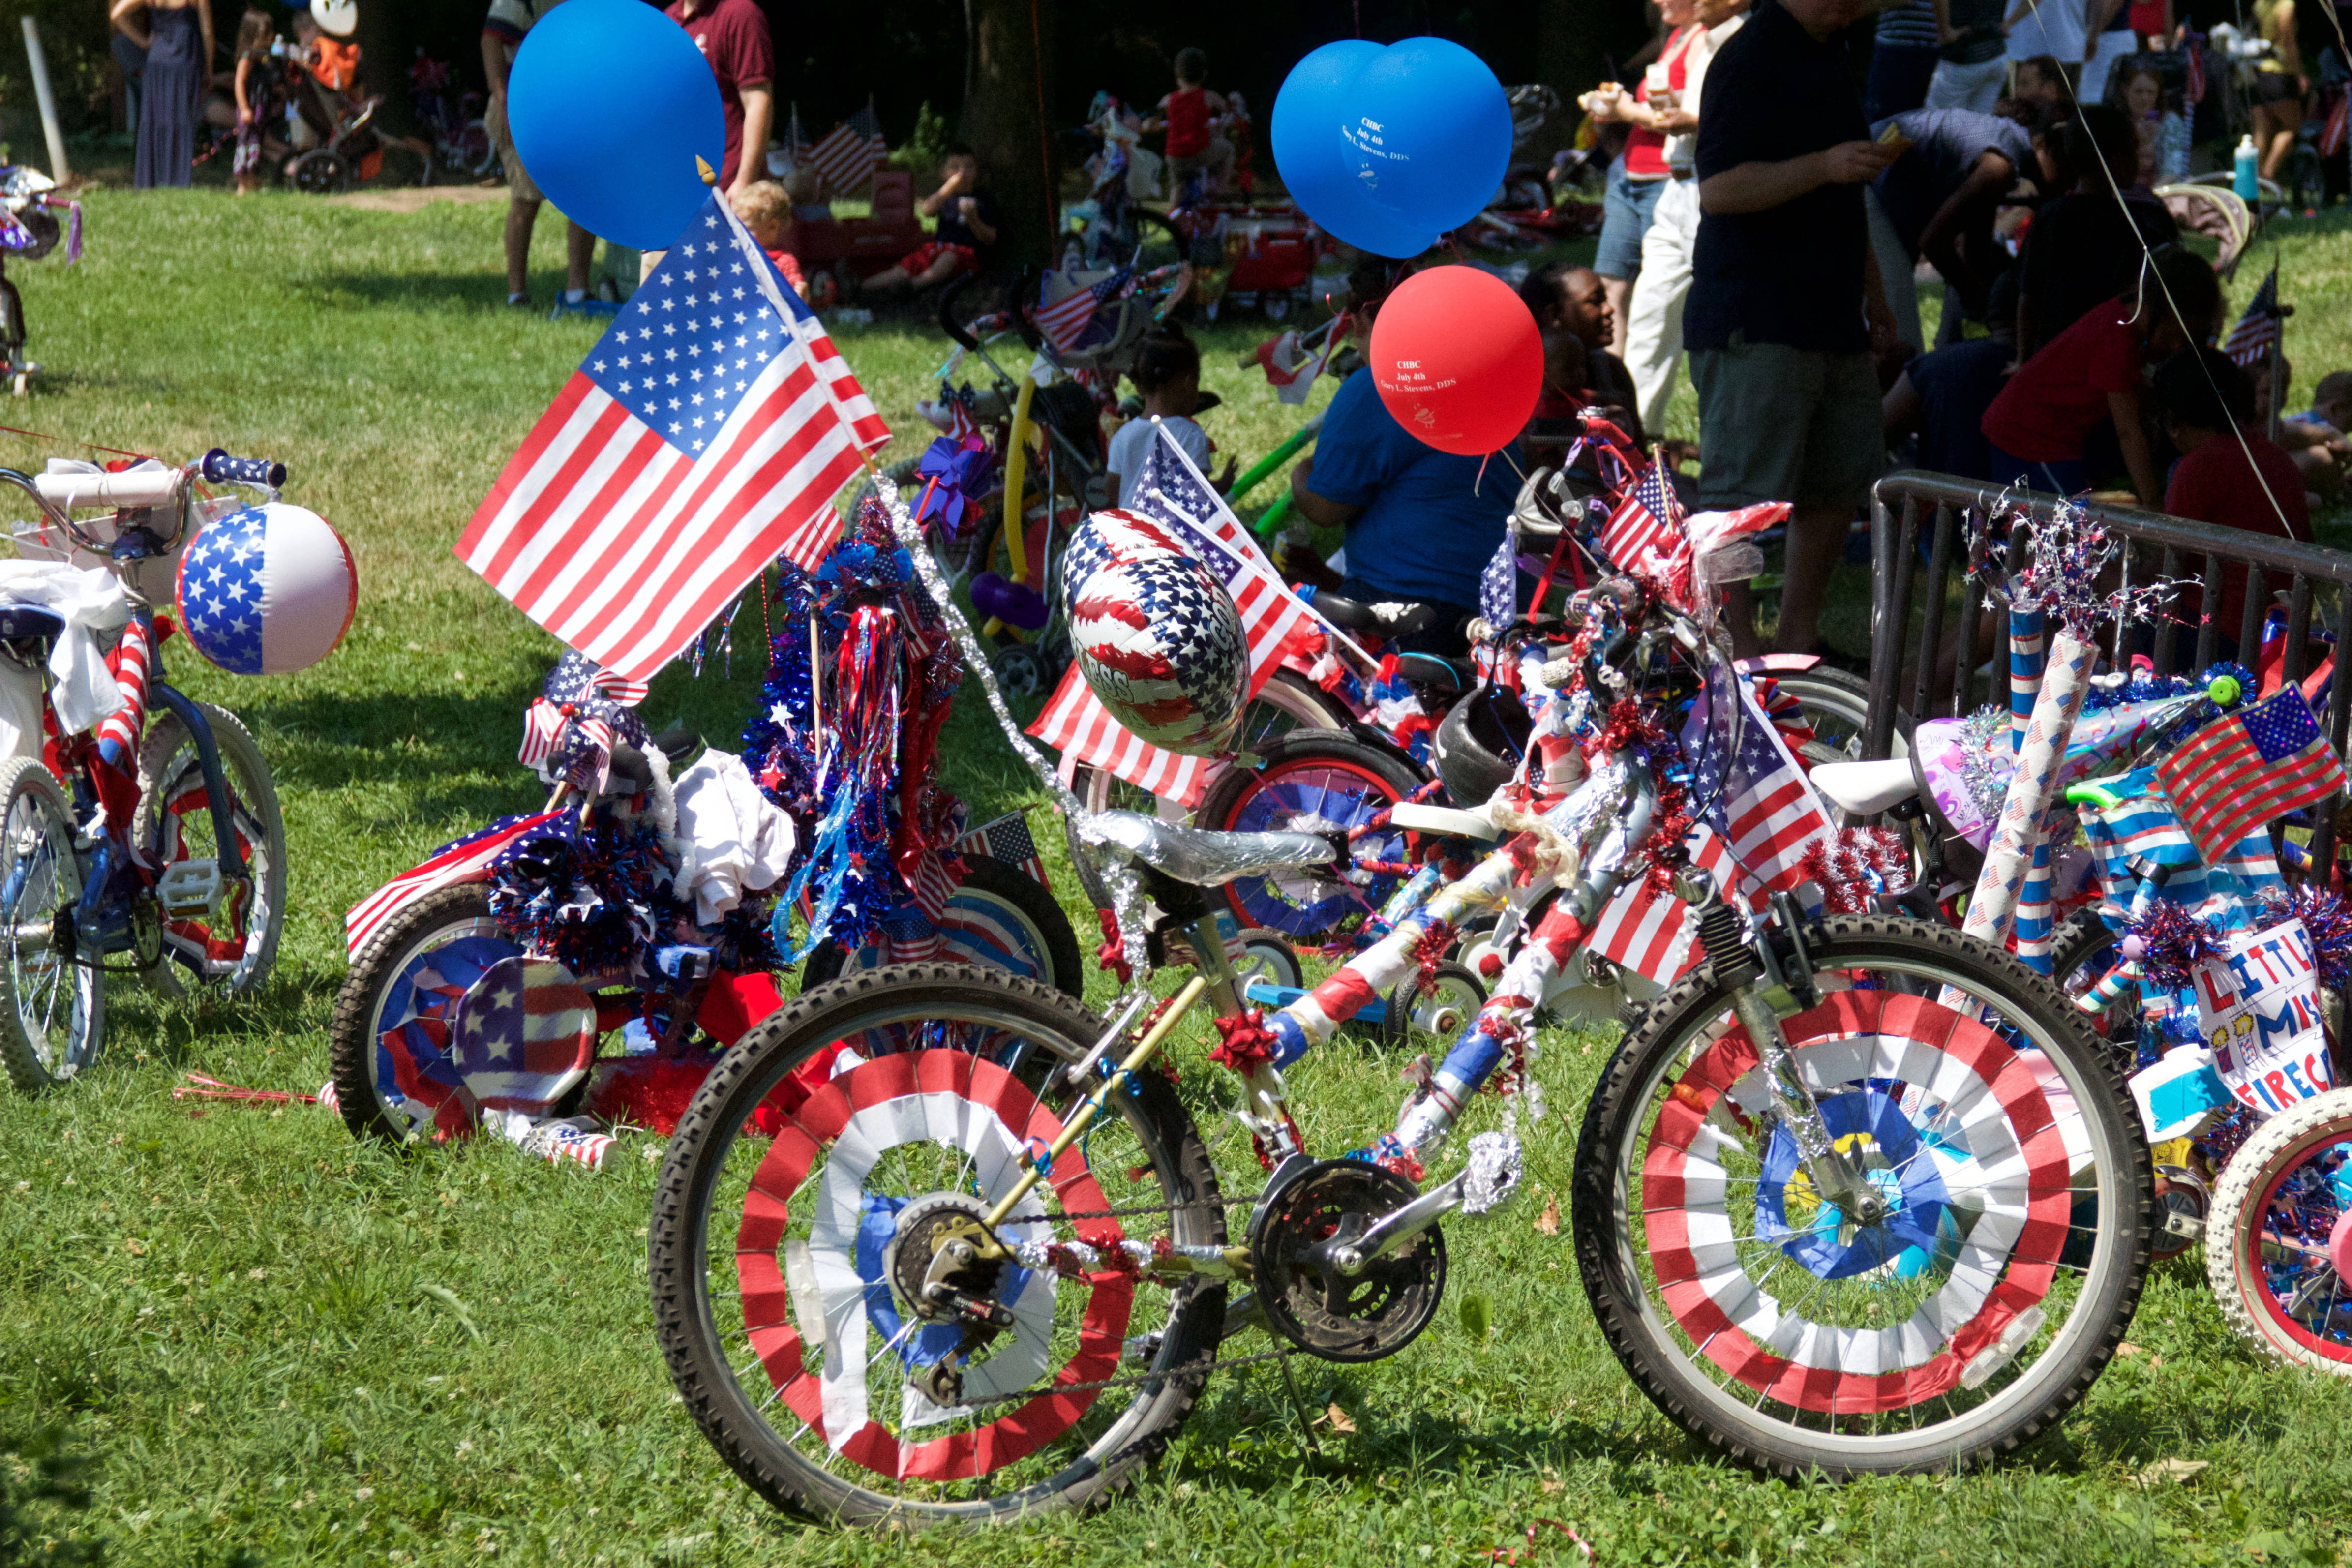 Gladwynne Lower Merion Memorial Day Parade patriotic bikes